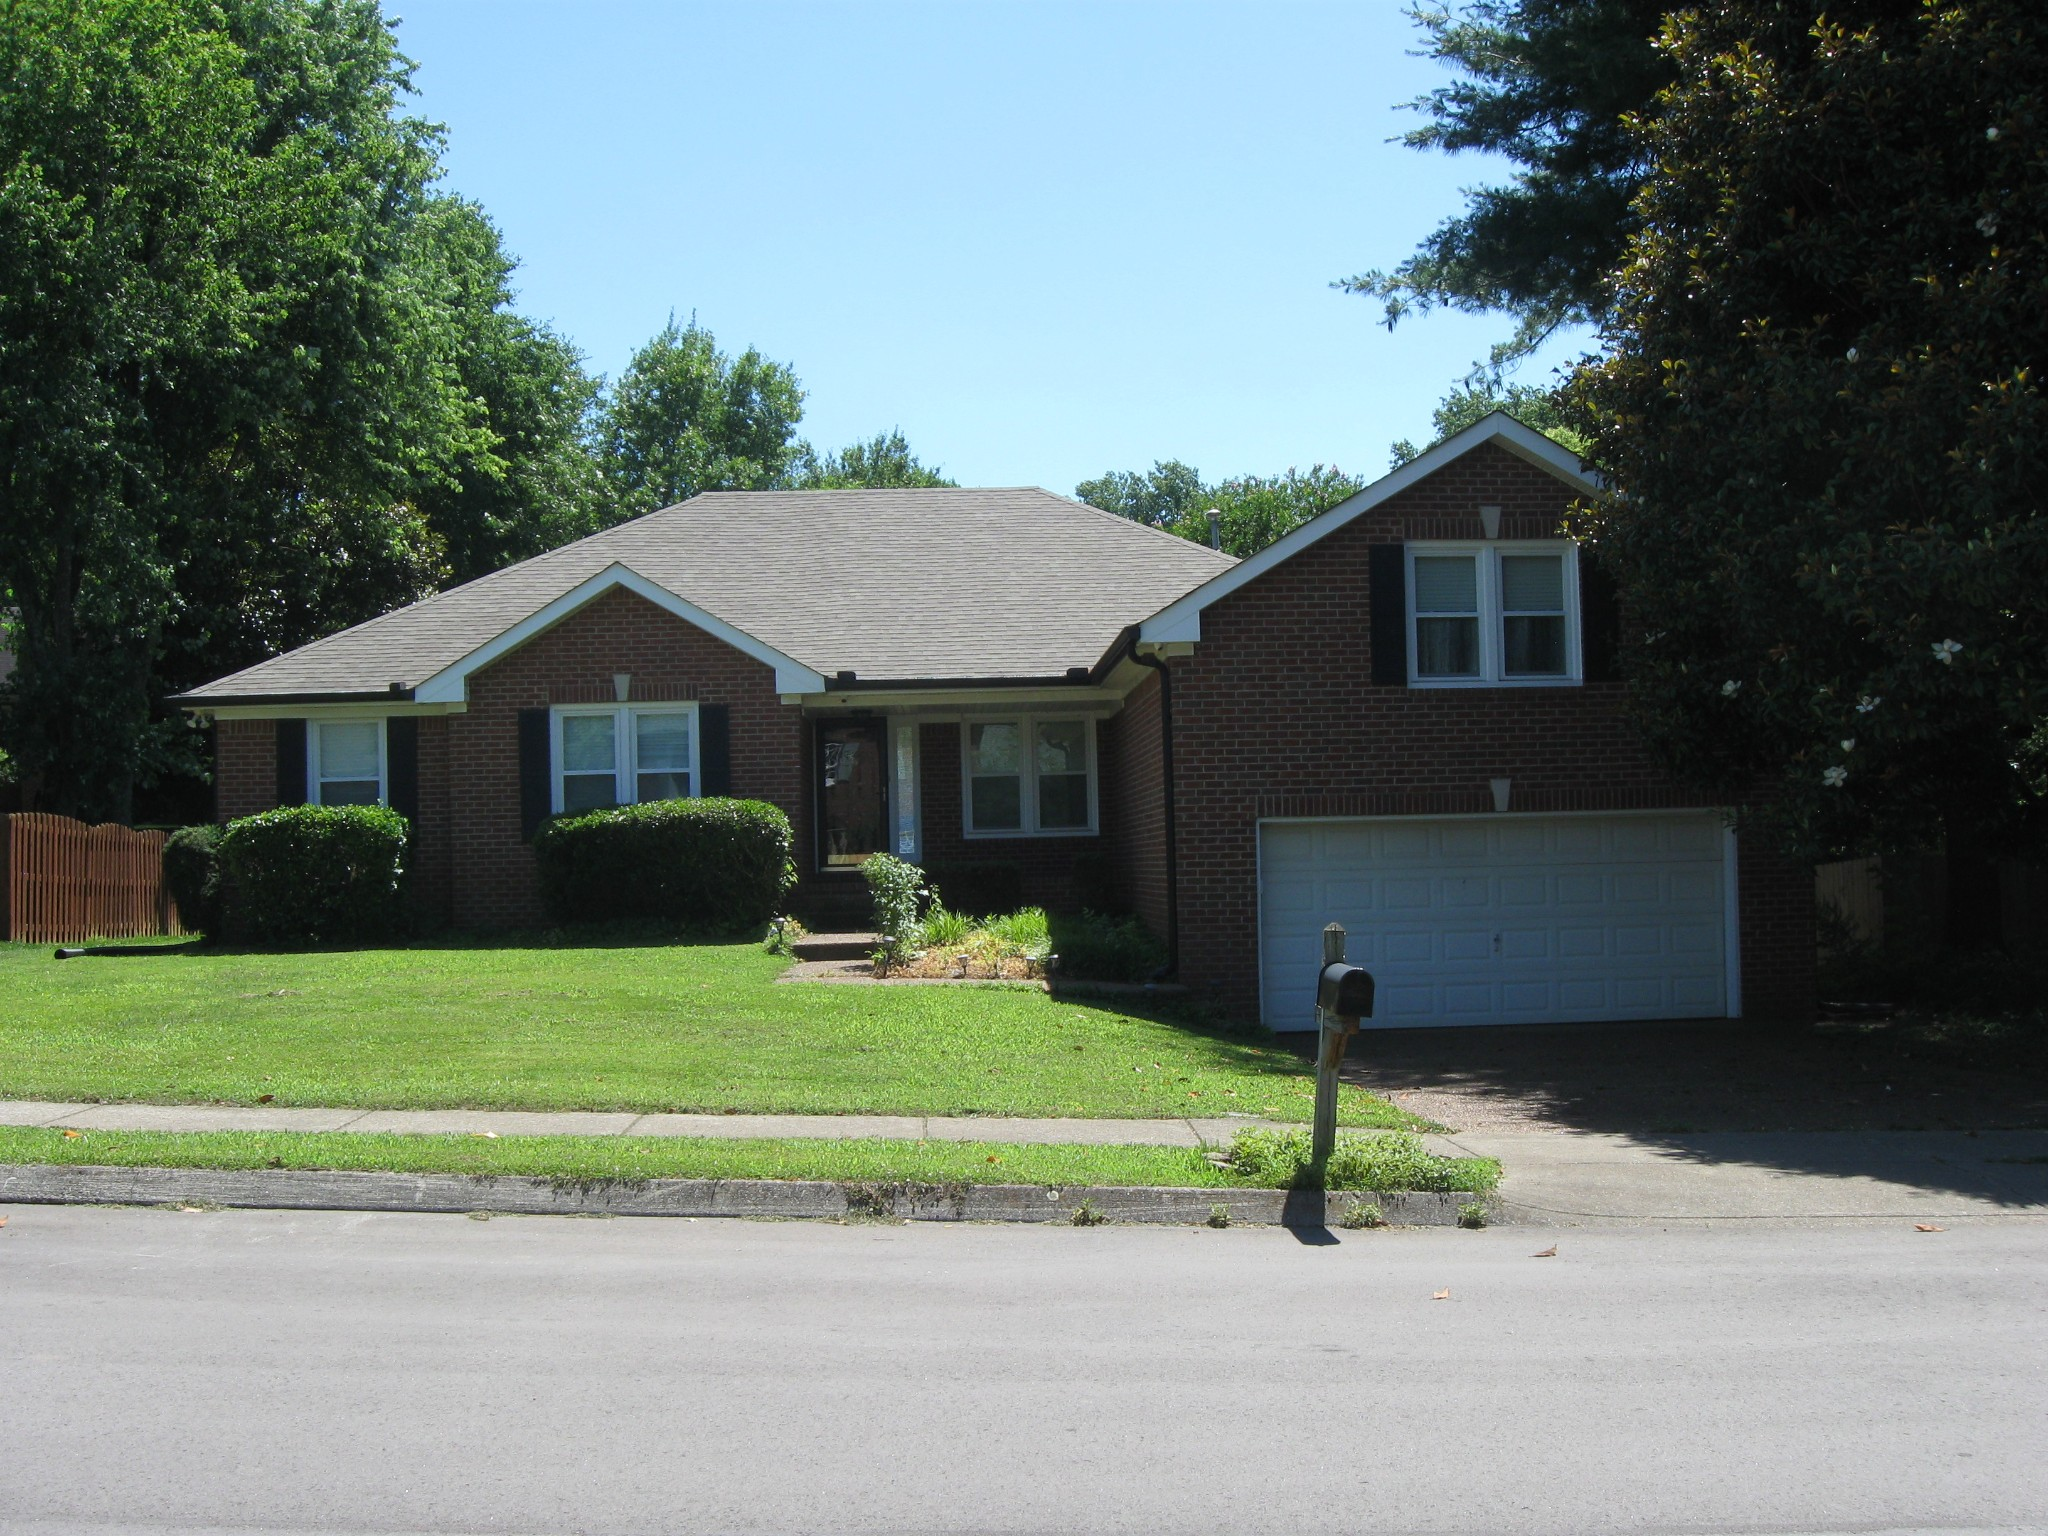 Nicely Renovated All Brick Home Close to Downtown Franklin~Large Private Back Yard~ Completely Renovated Kitchen & Baths w/ White Cabinets~All New Windows~New HVAC~New Hot Water Heater~New Gutters~Bright & Open Main Level Living w/ Large Bonus Over Garage! Quick Close possible!